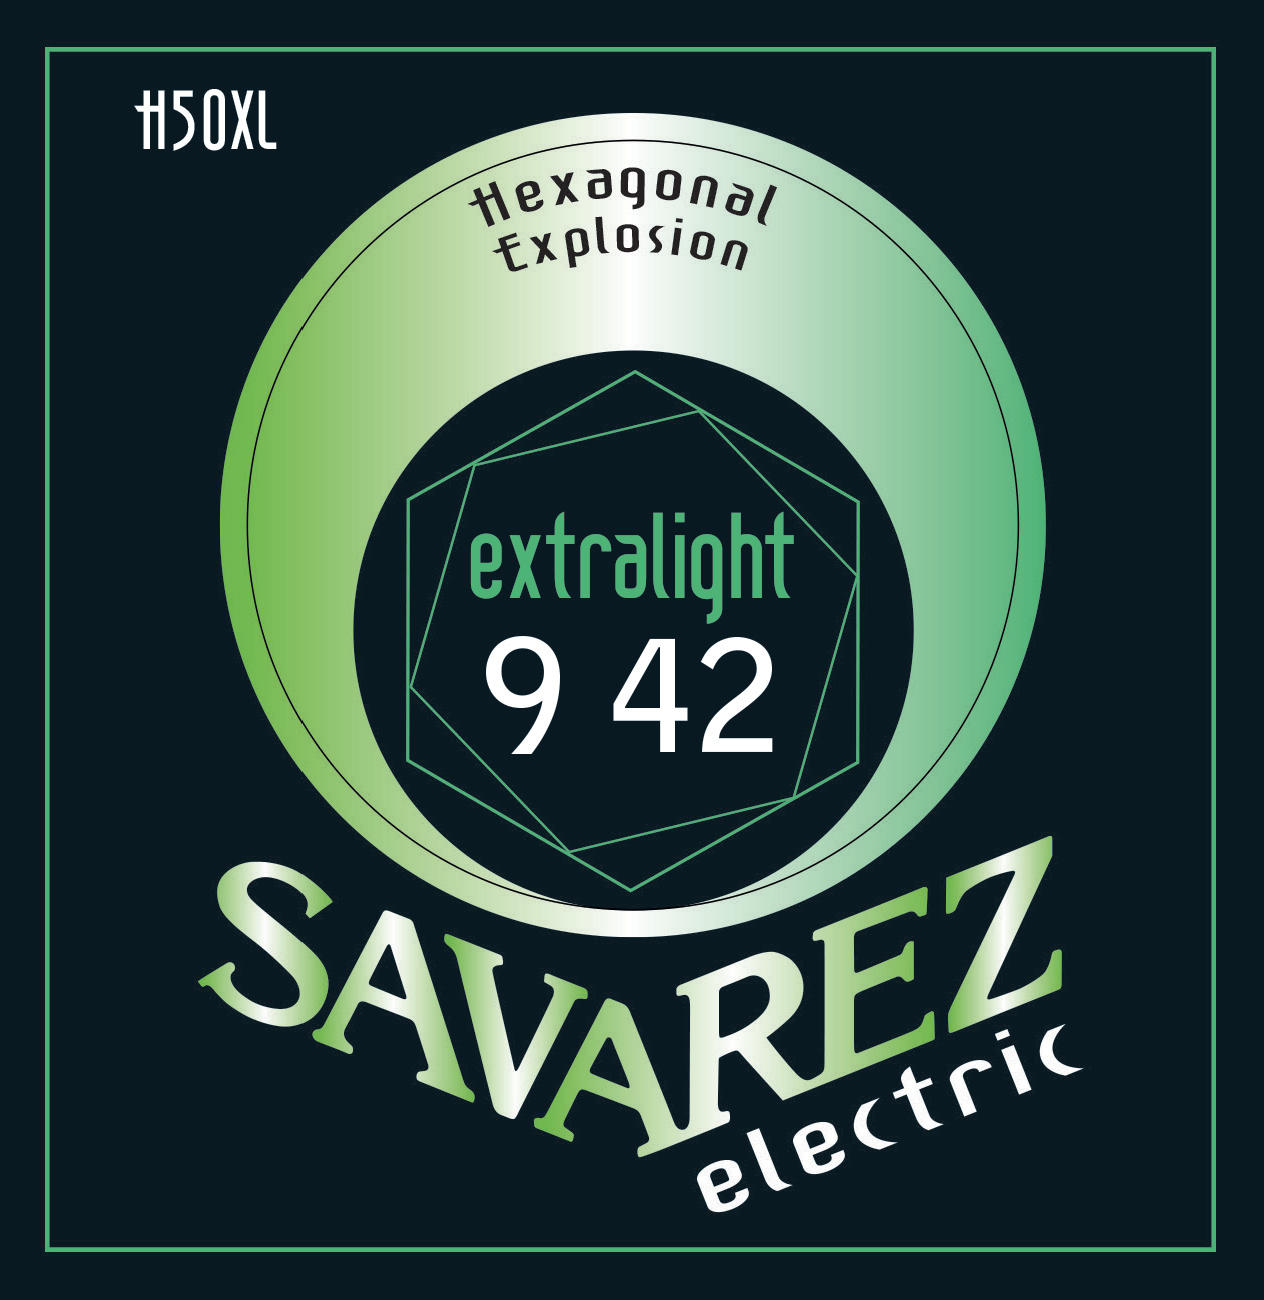 SAVAREZ ELECTRIC HEXAGONAL EXPLOSION H50XL